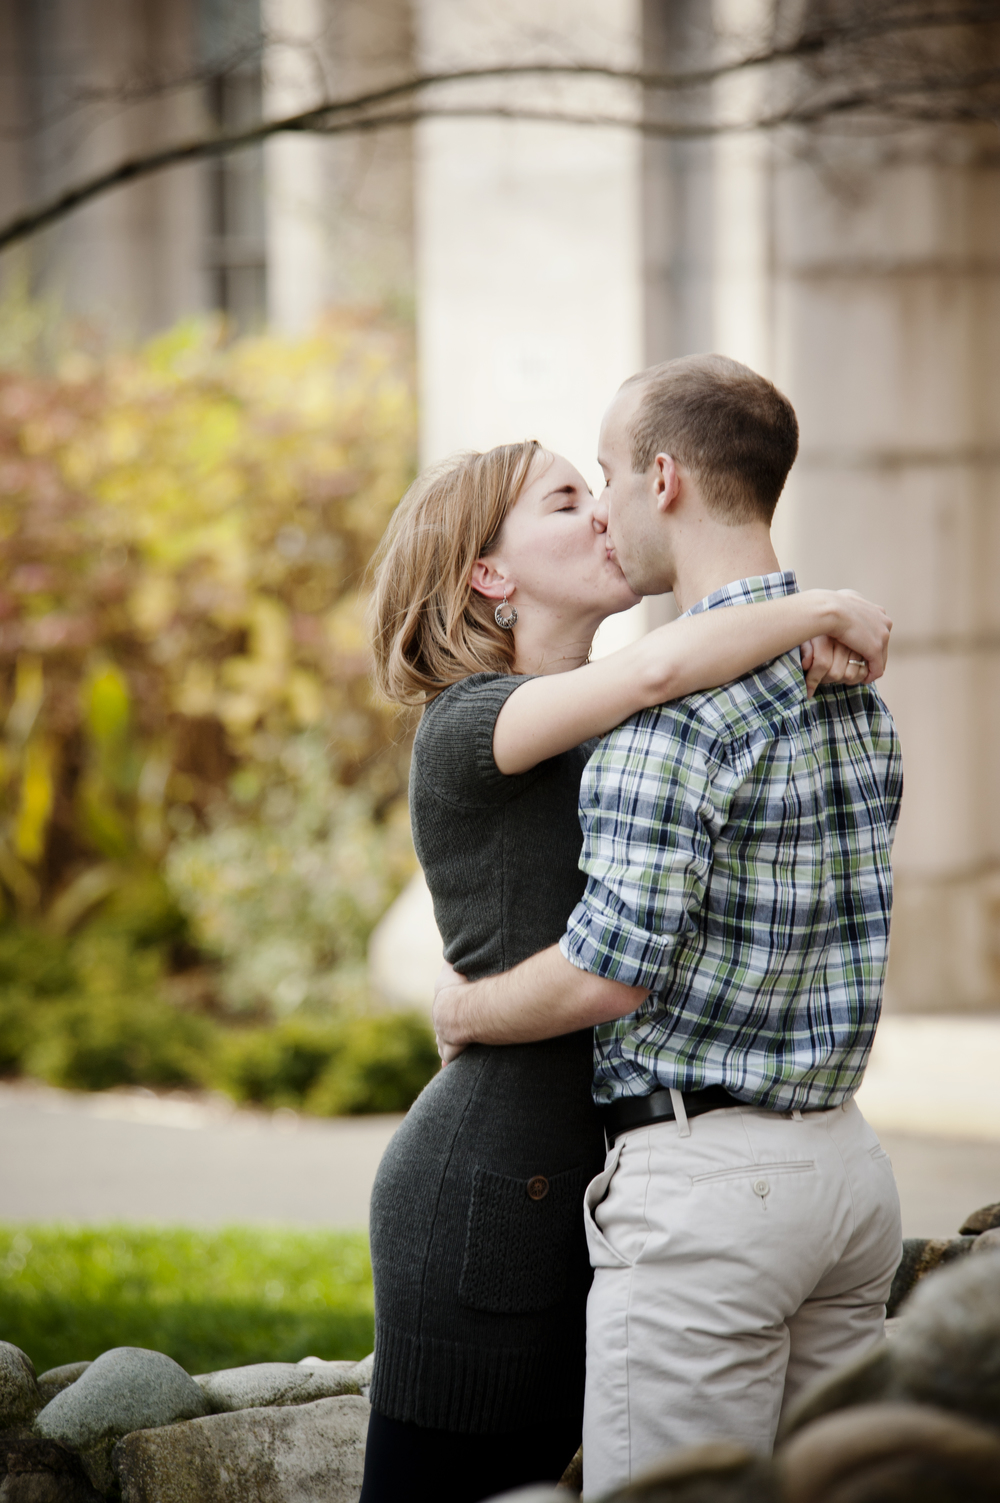 Kelsey Lane Photography, Seattle Wedding Photographer, Engagement, Proposal_Travis + Amy 07.jpg